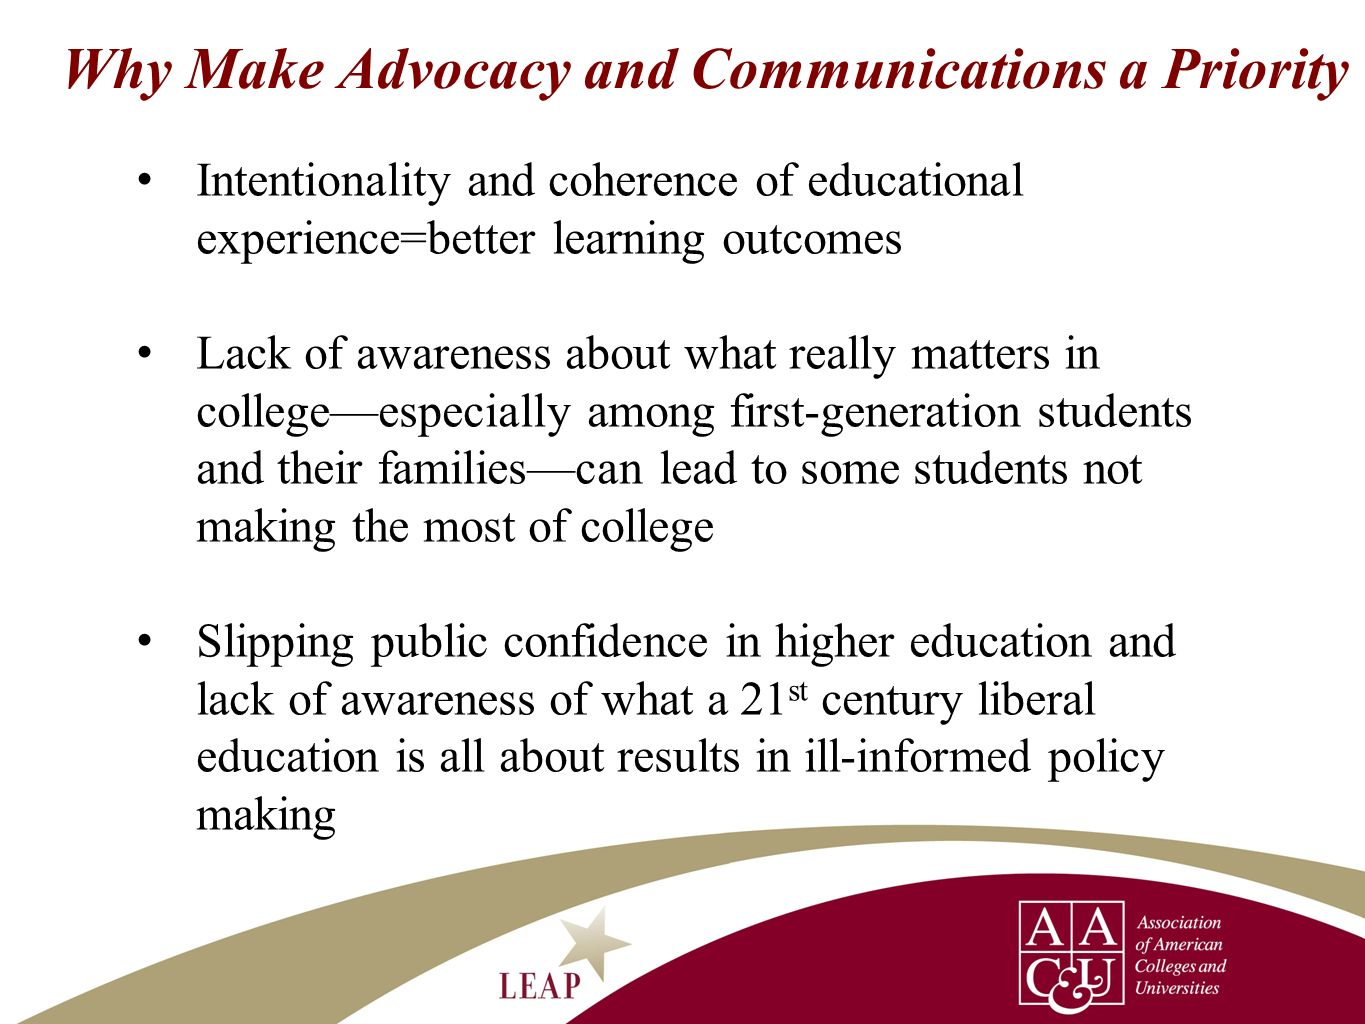 Why Make Advocacy and Communications a Priority